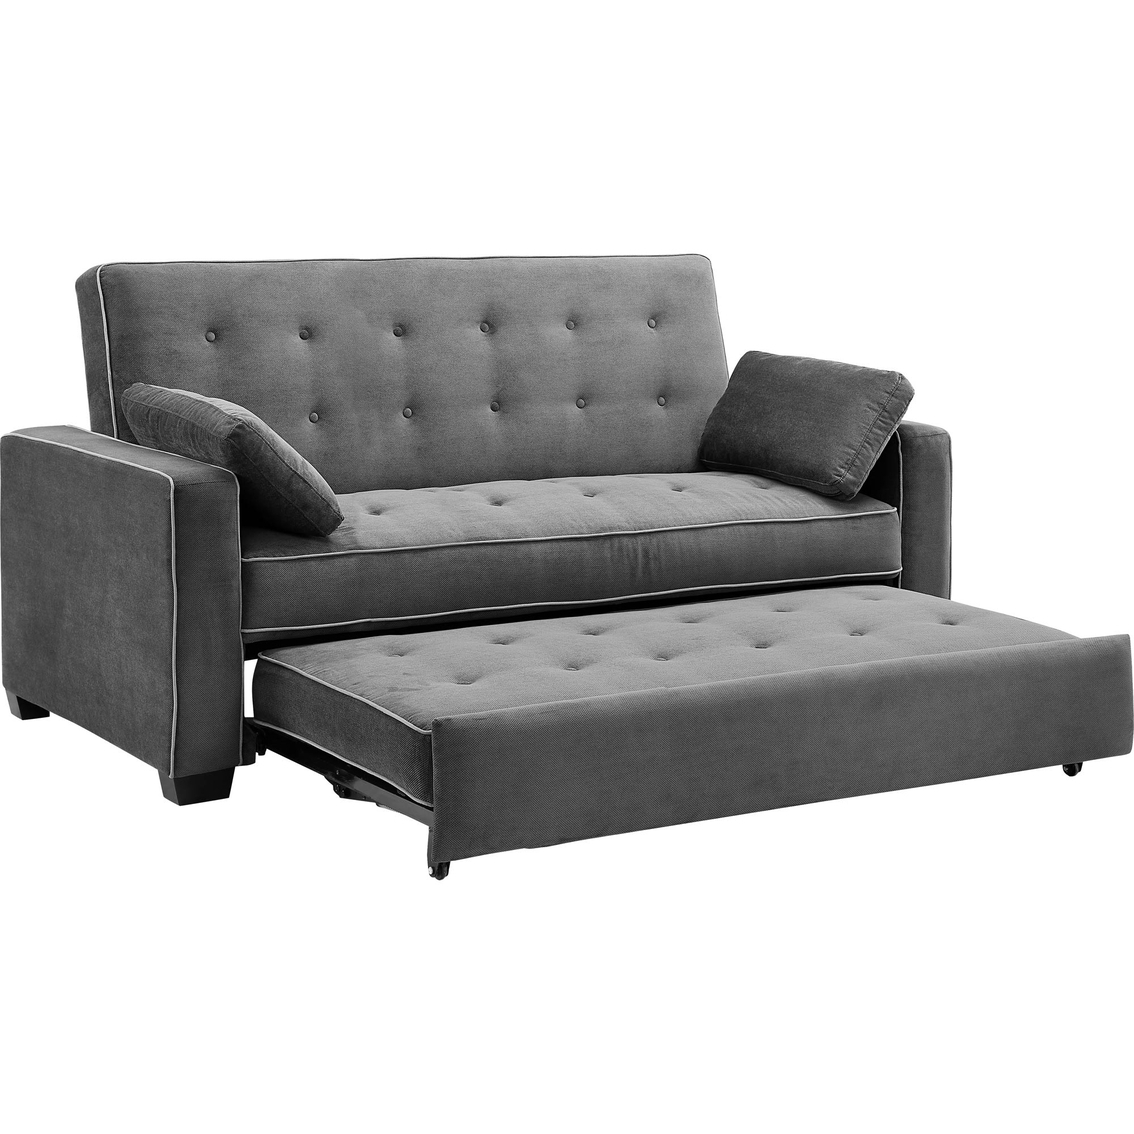 Serta Augustine Convertible Sofa Bed For Convertible Sofas (Image 6 of 10)